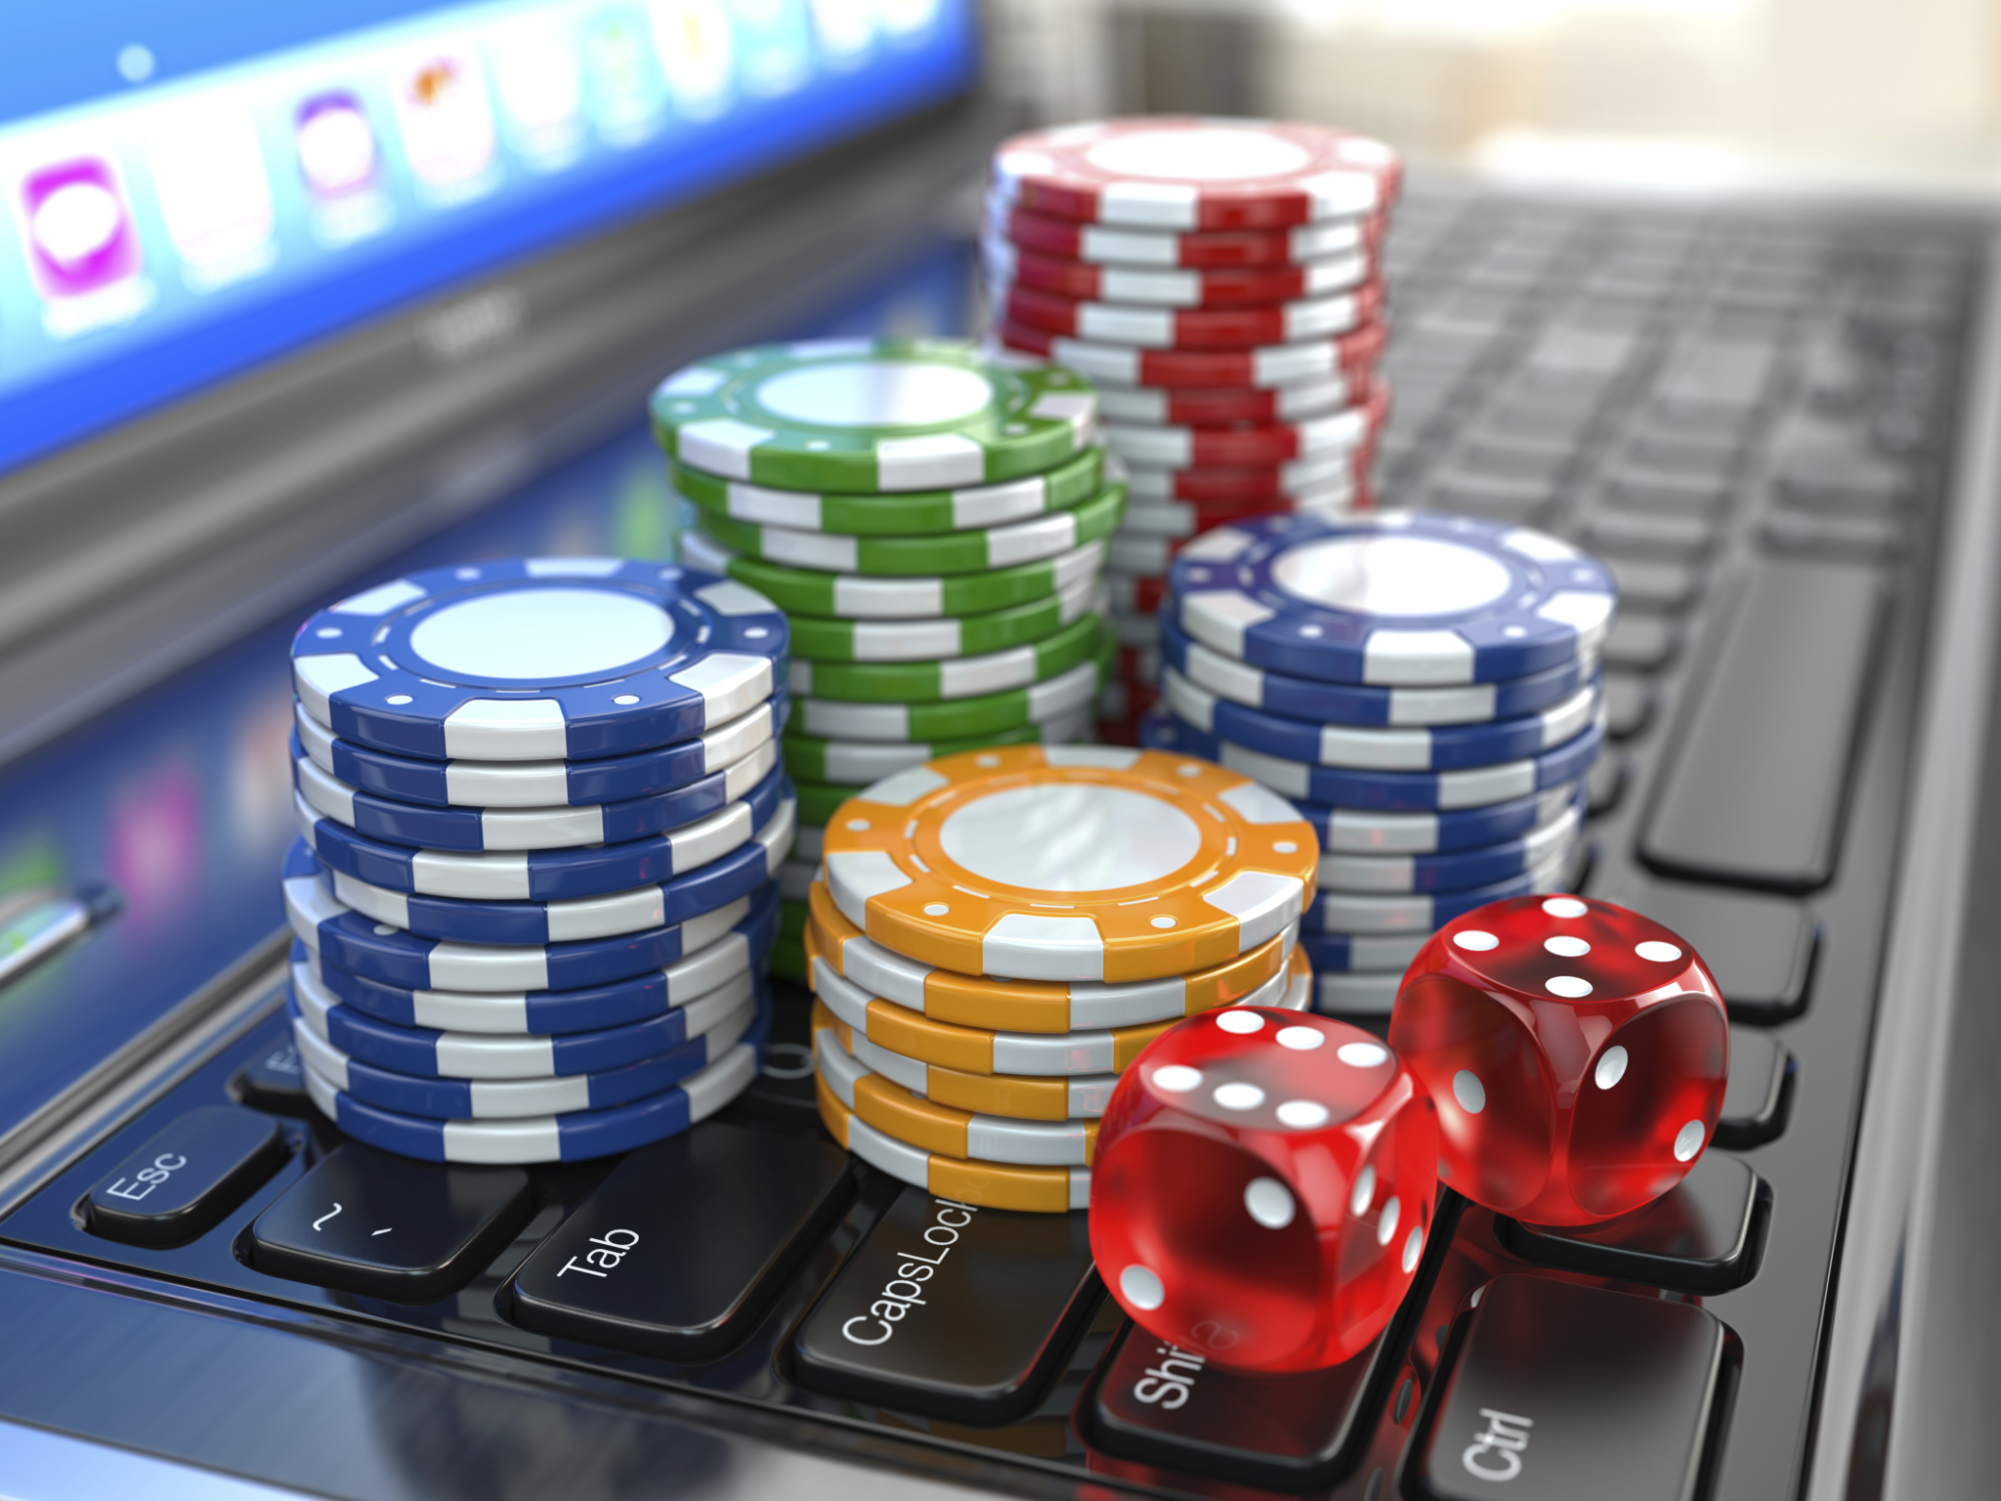 Get comfortable and convenient with Thai online casinos